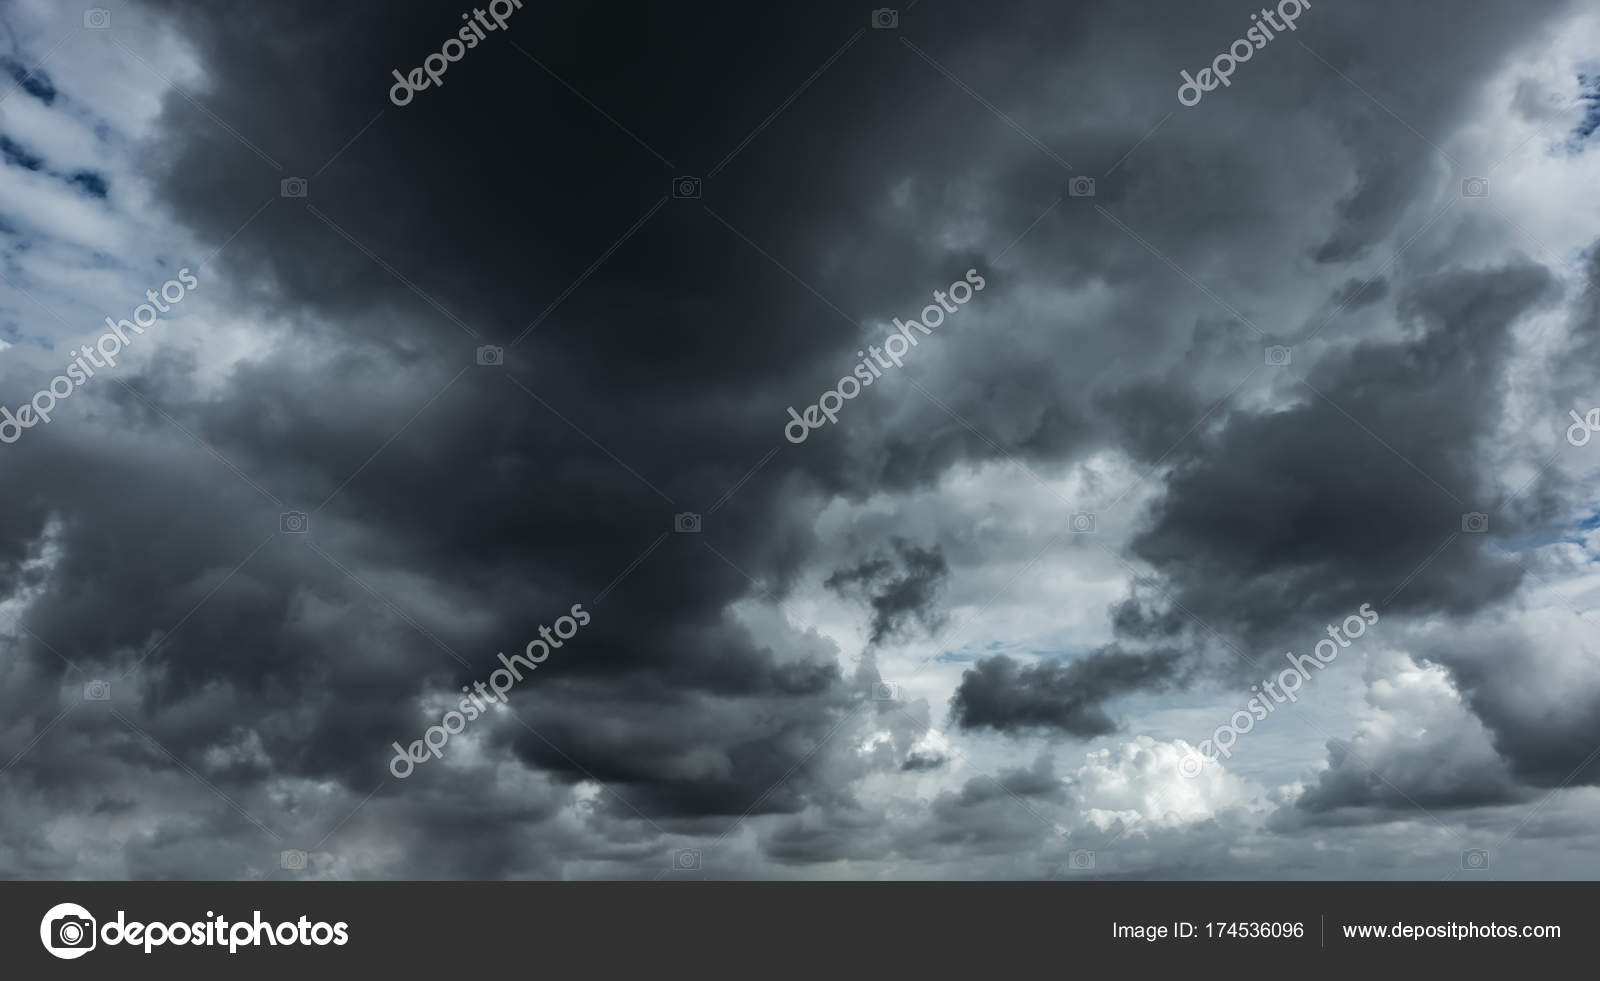 Wallpapers Thunderstorm Hd Wallpaper Dramatic